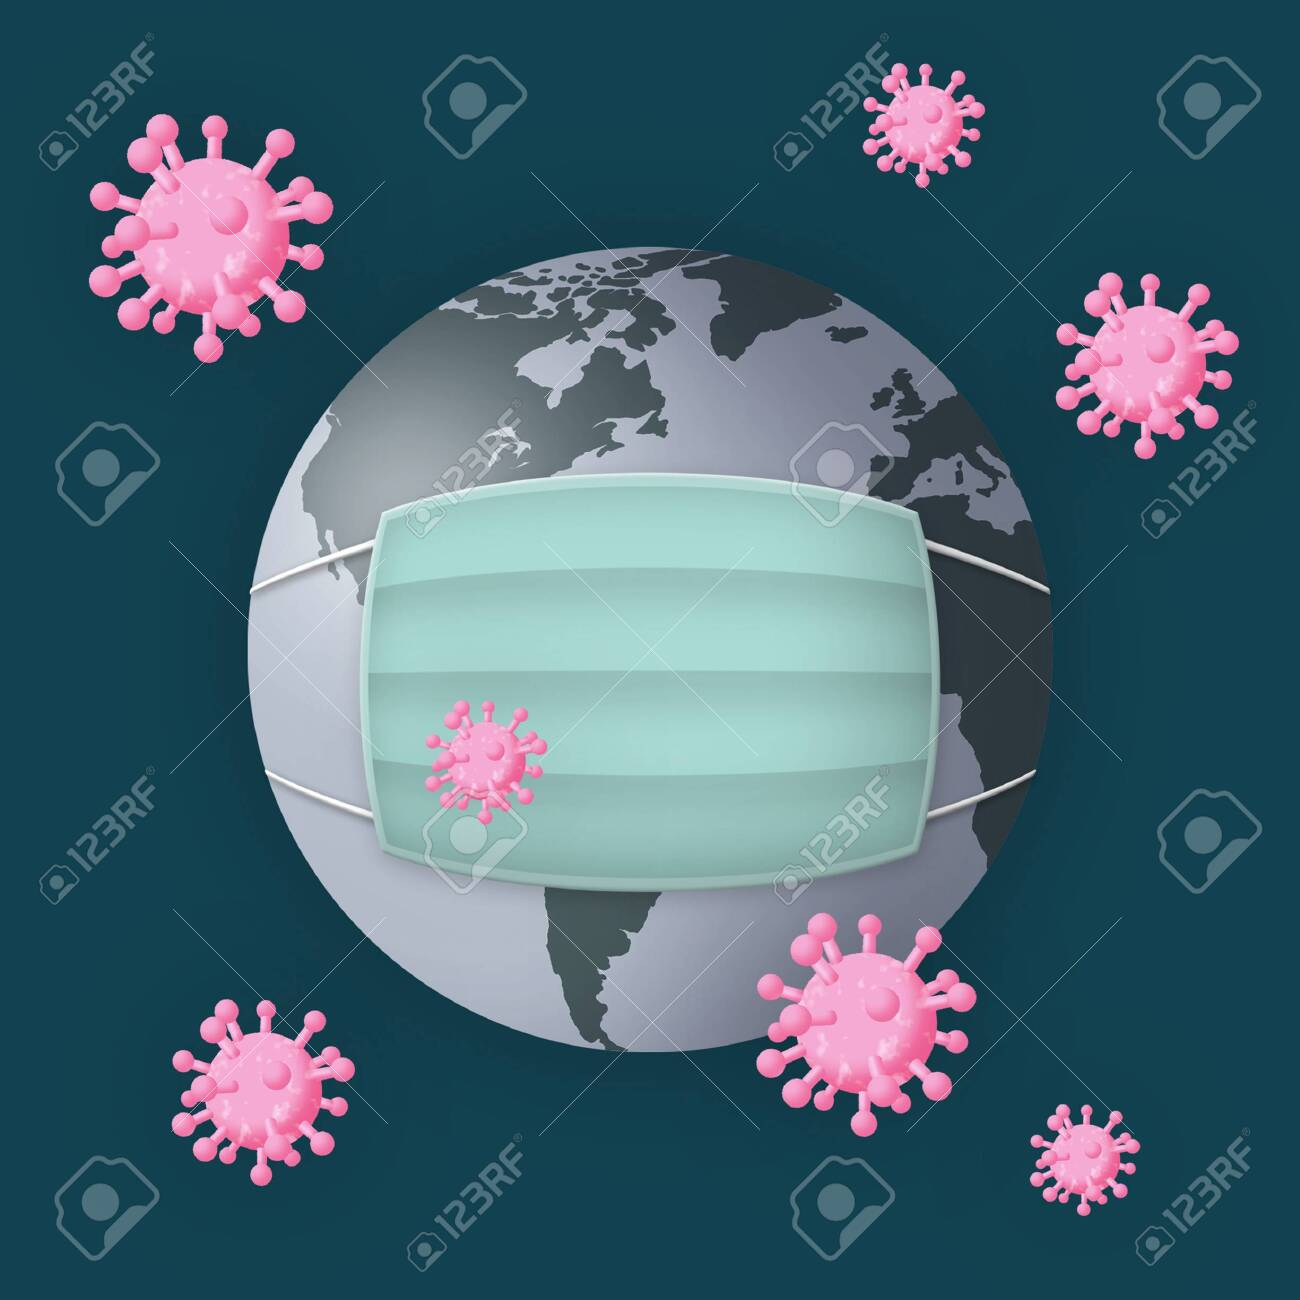 Planet Earth with facemask surrounded by viruses. - 144594569